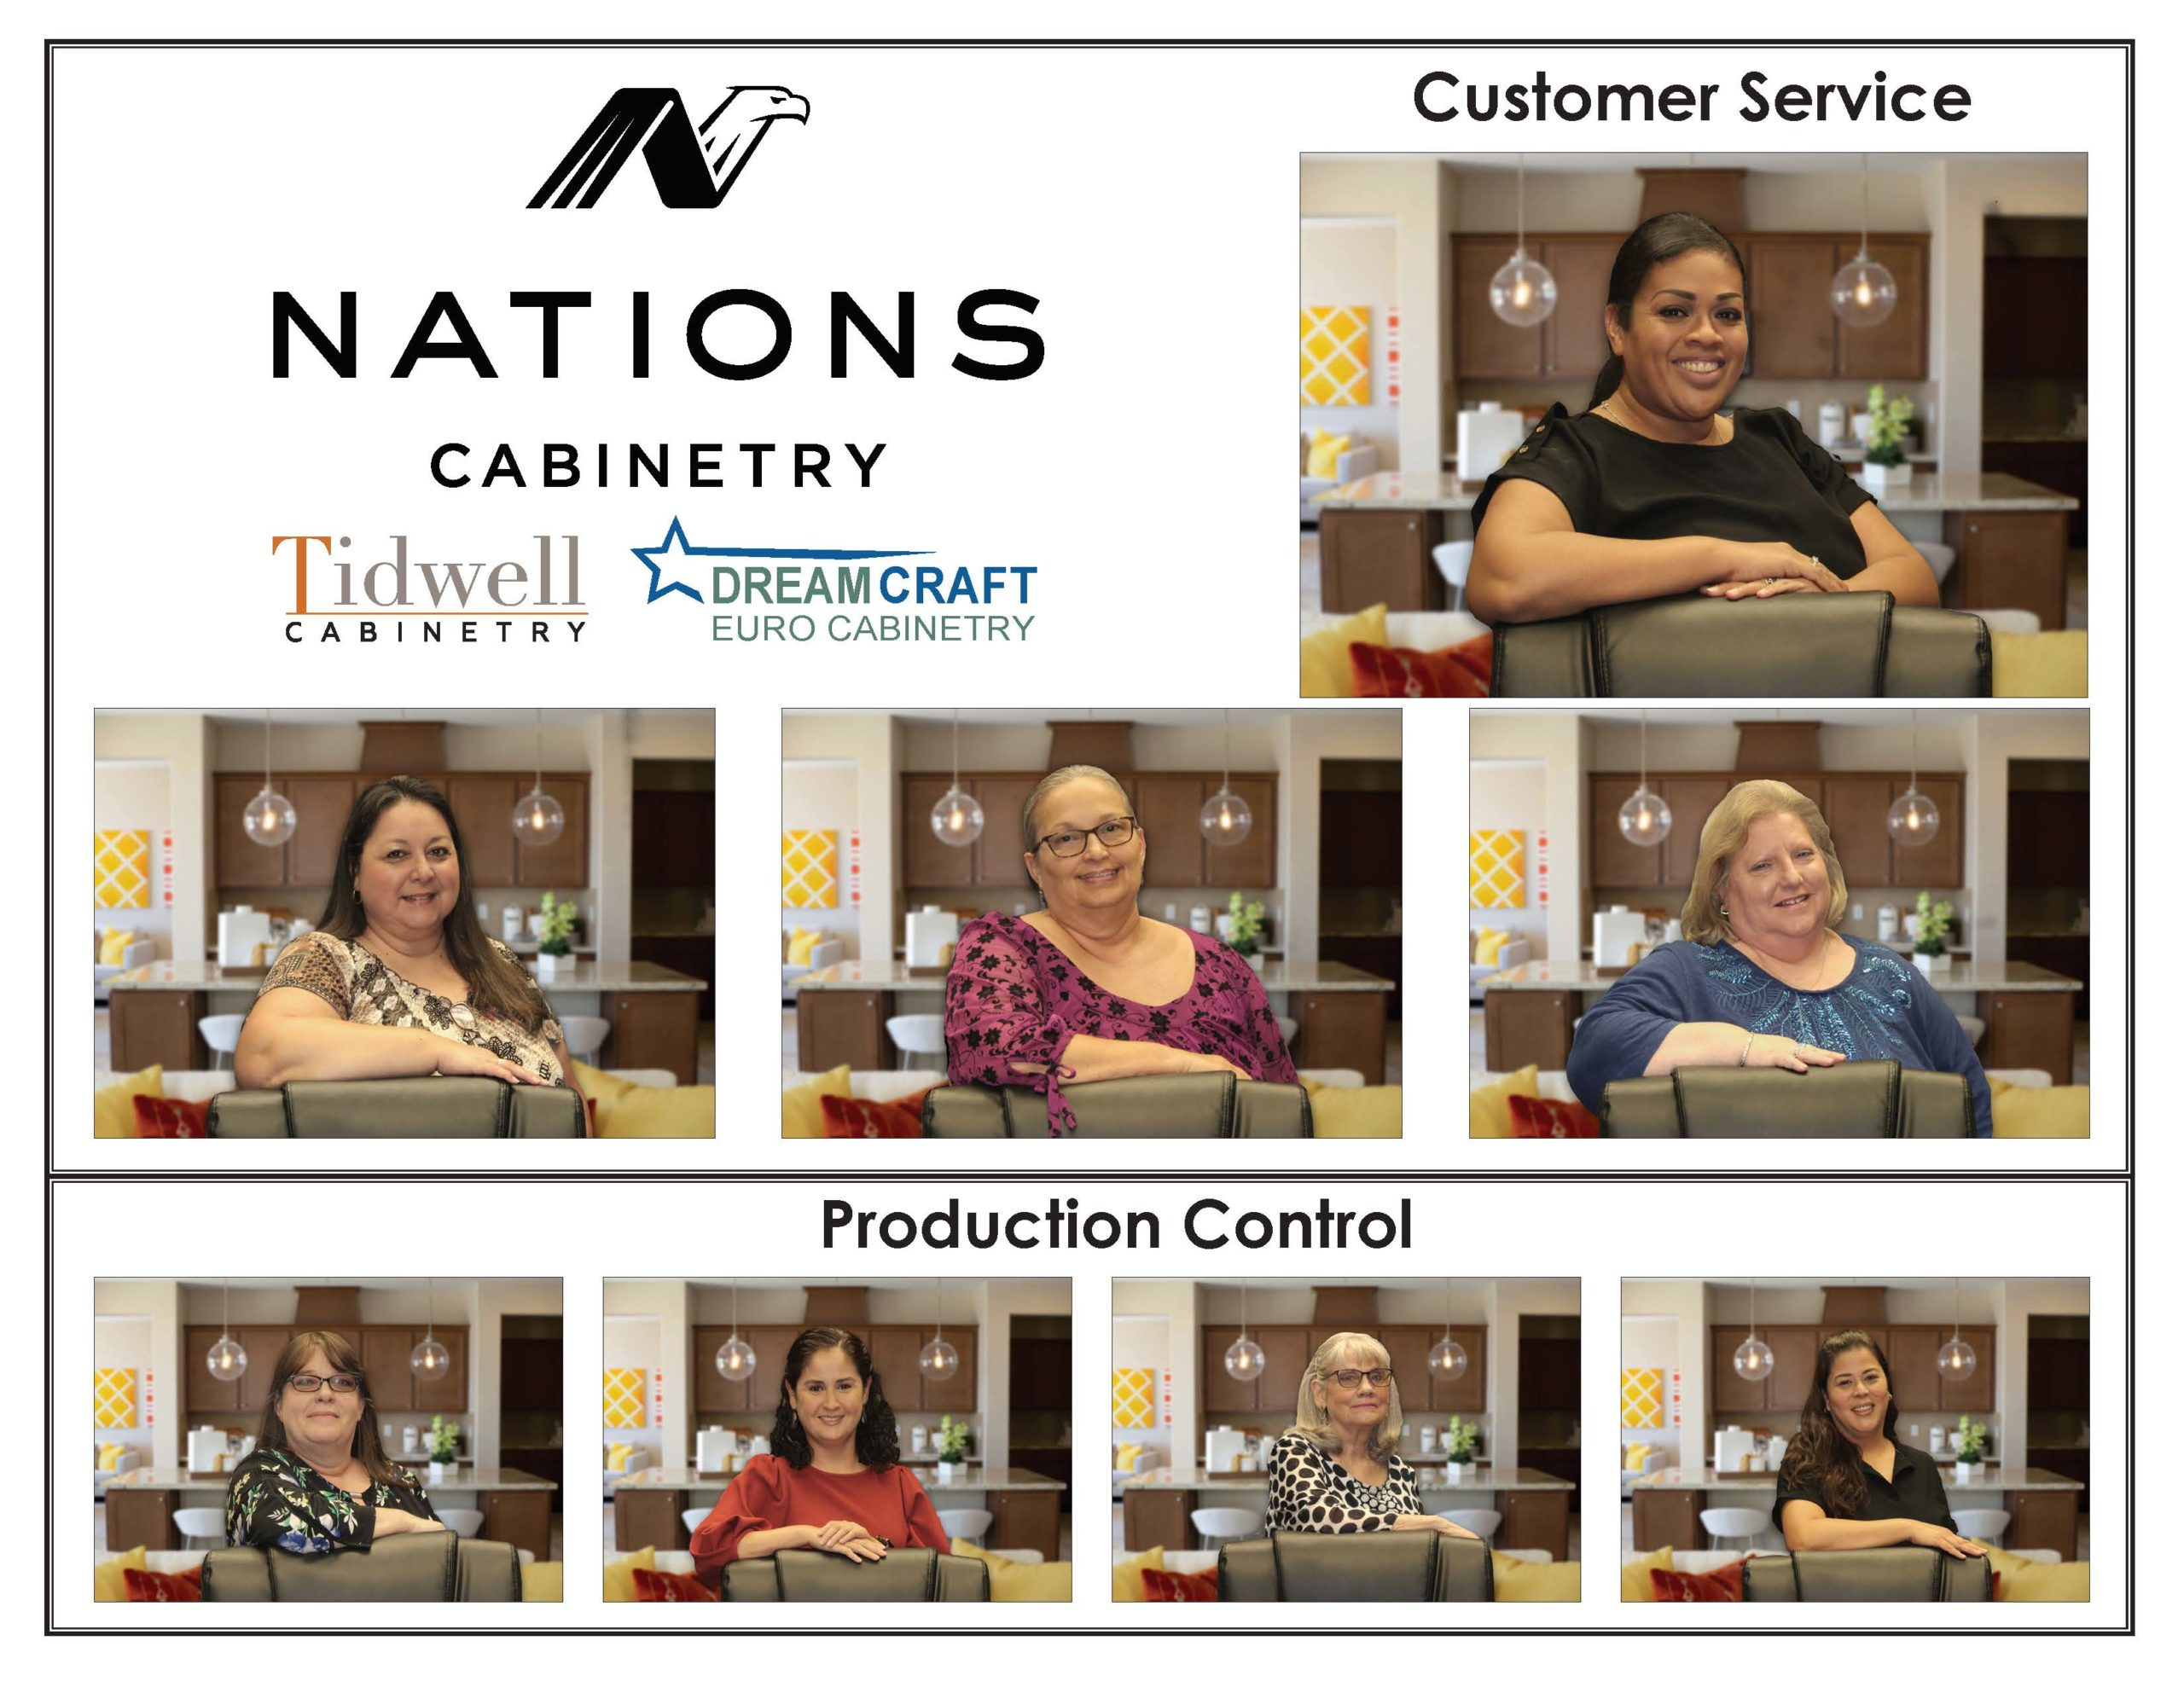 Meet our customer service team